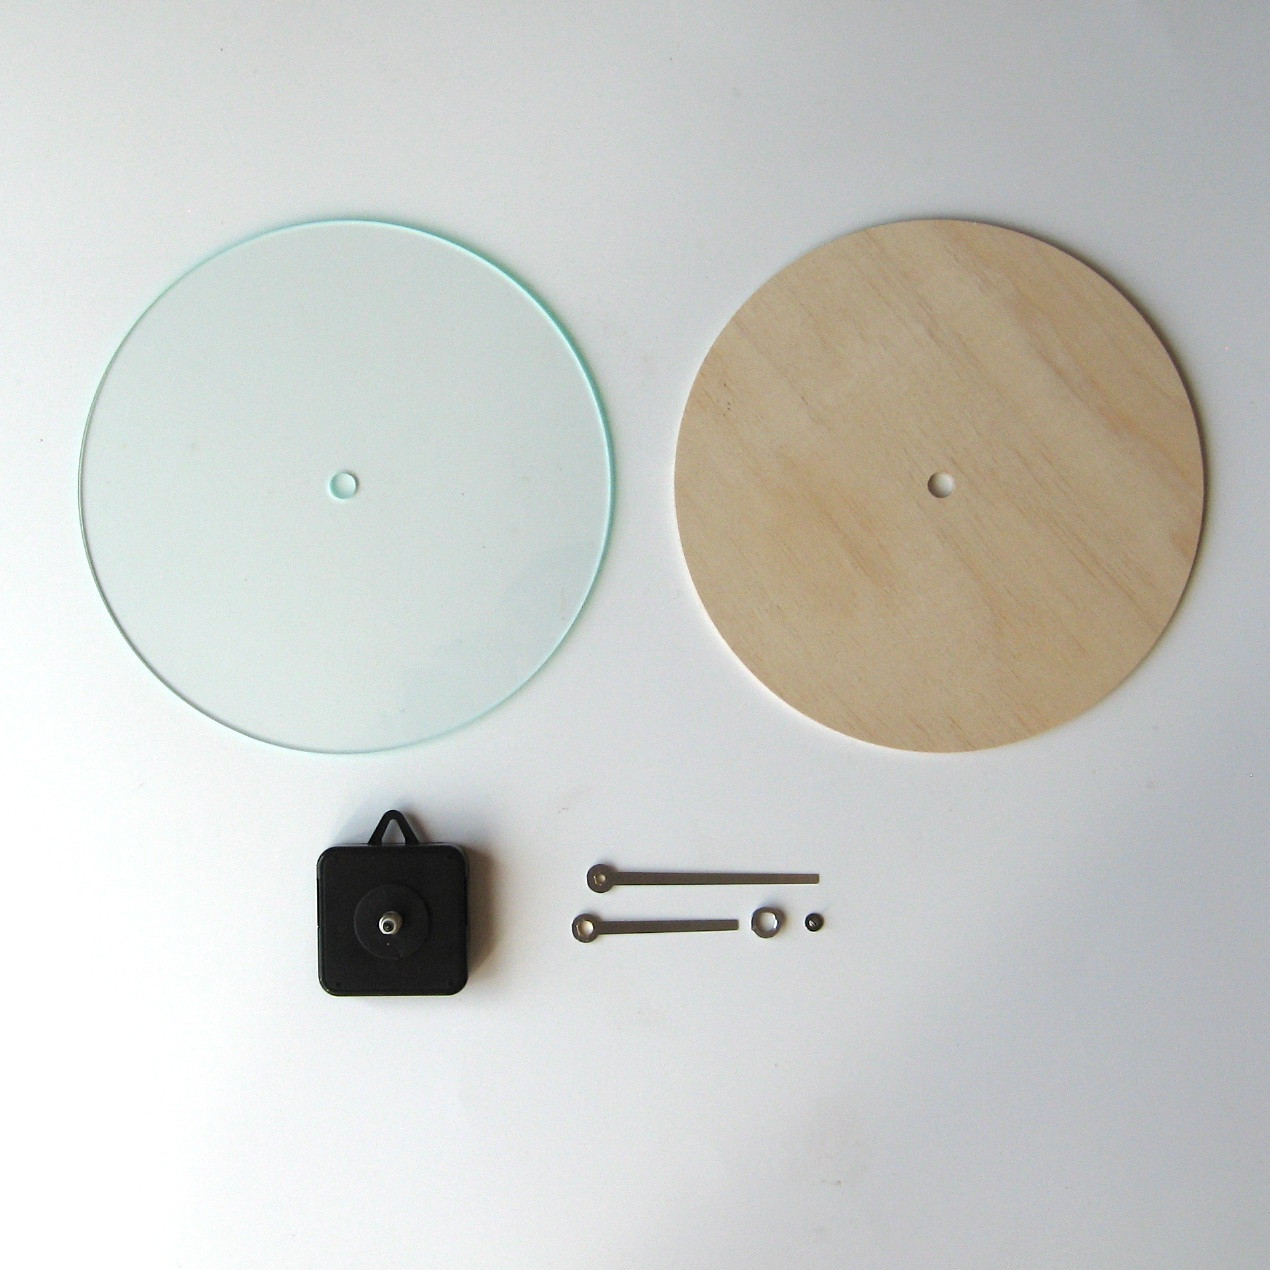 Best ideas about DIY Clock Kit . Save or Pin Objectify DIY Wall Clock Kit Round Now.